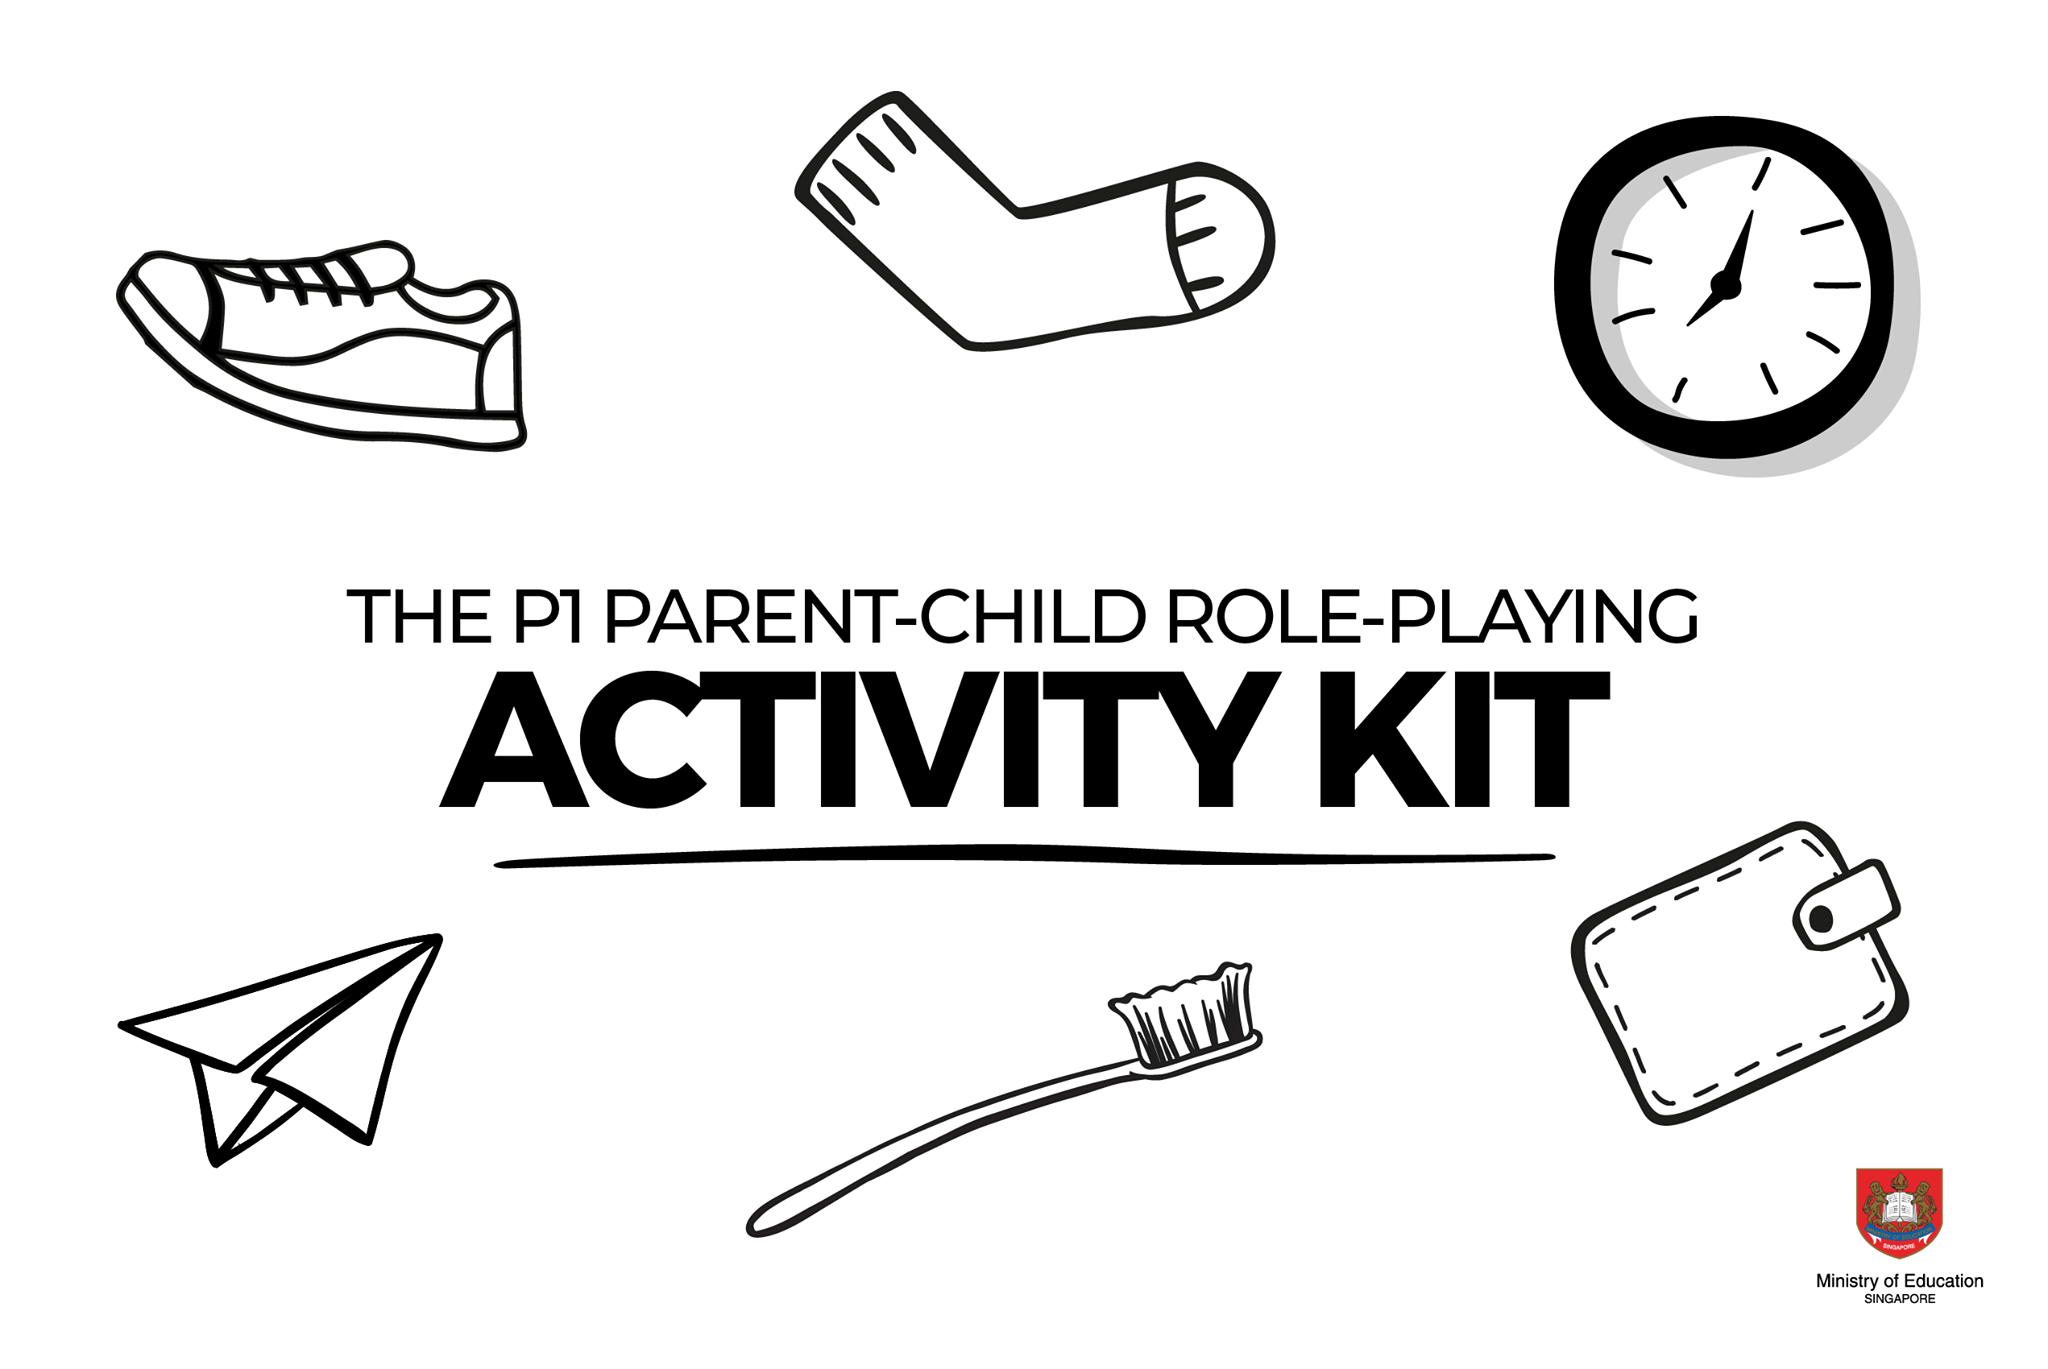 P1 parent-child activity kit cover image